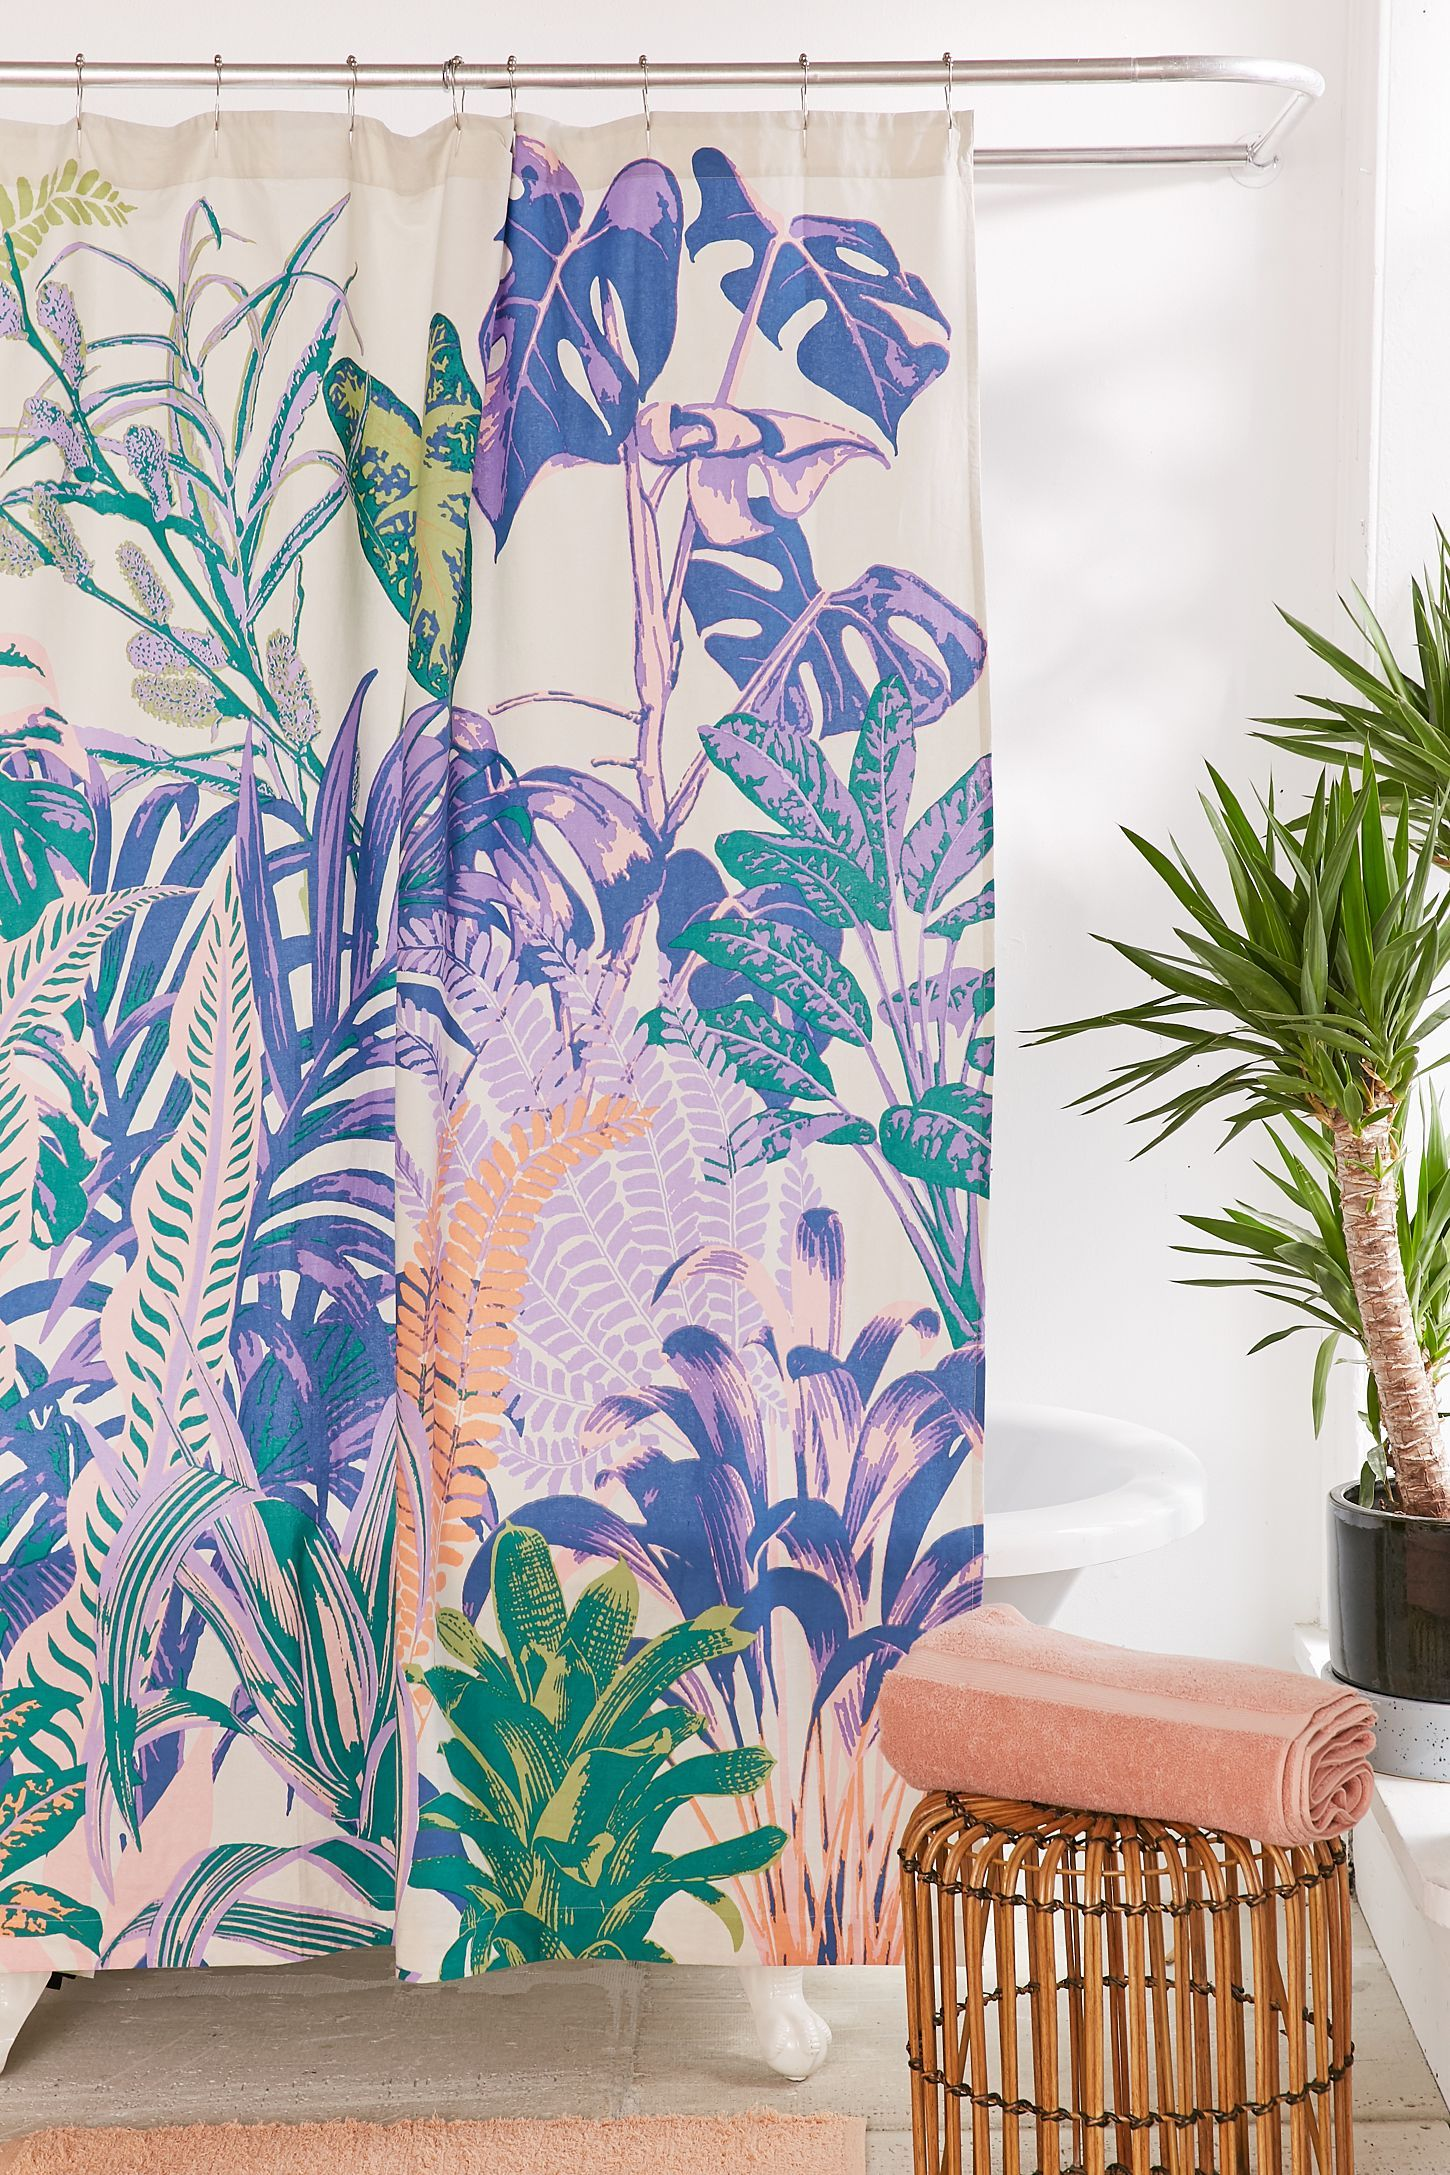 Dreamy Jungle Shower Curtain In 2020 Bohemian Shower Curtain